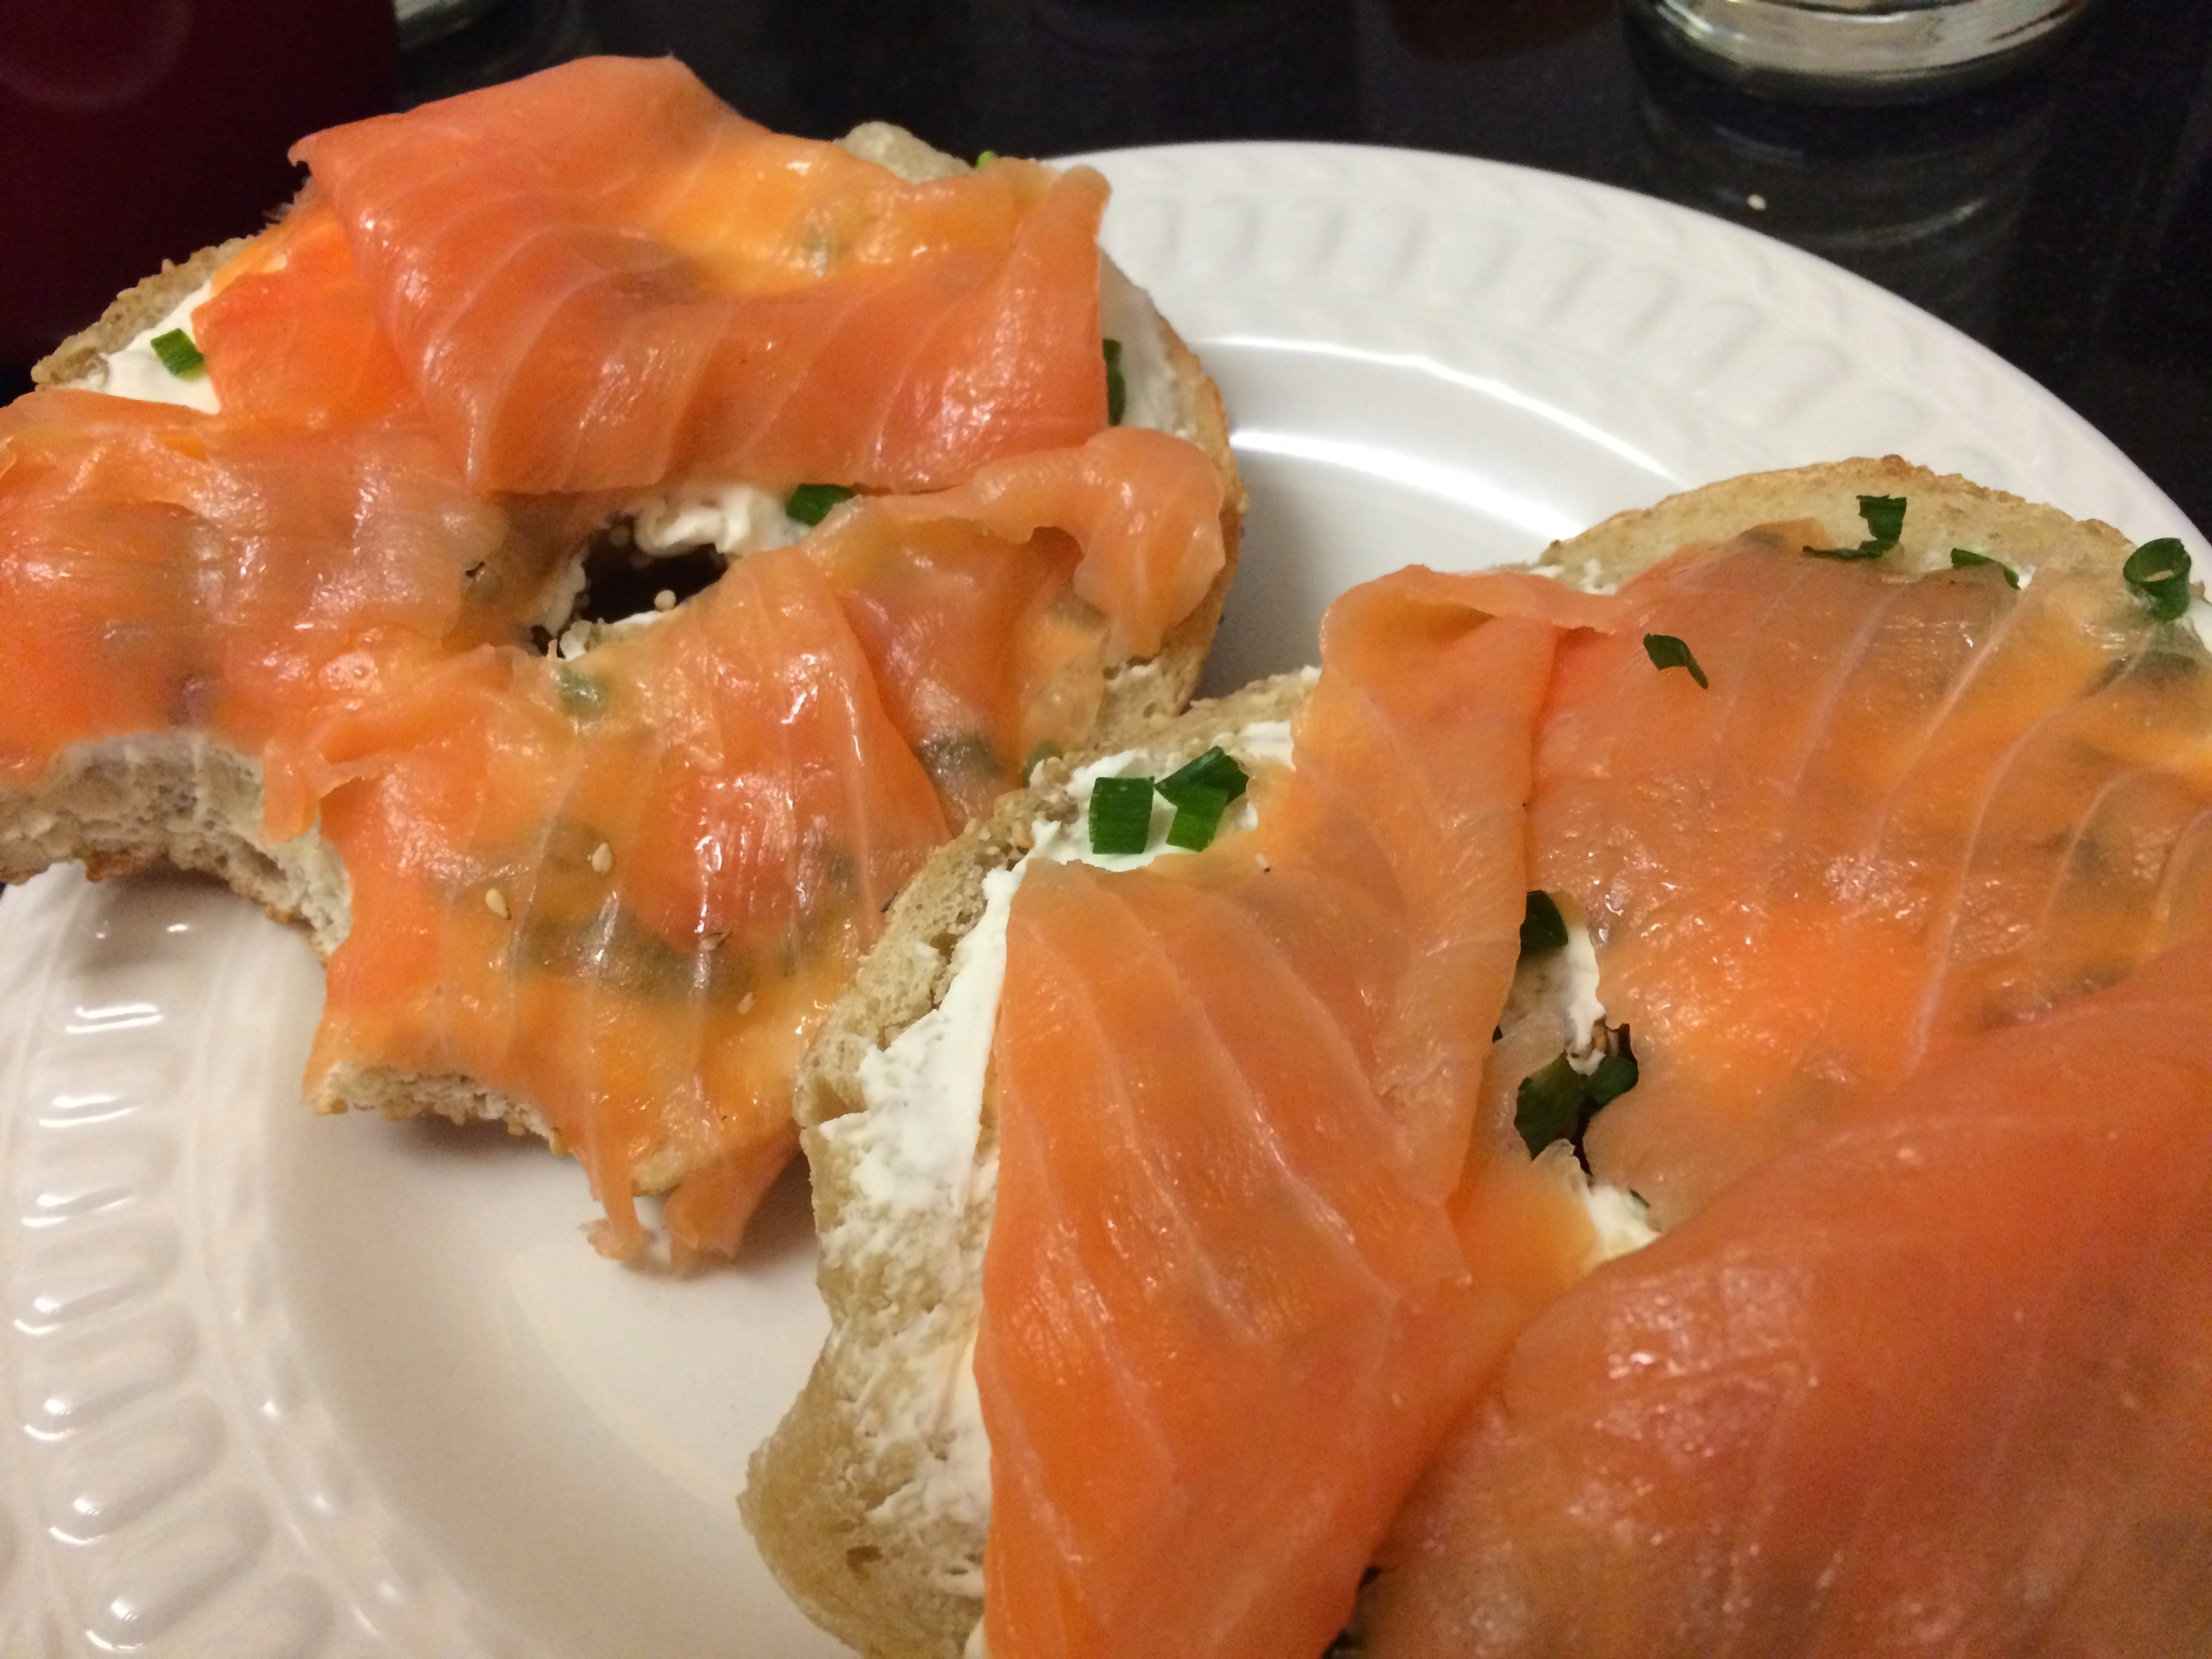 Sesame seed bagel, cream cheese, chives, and lox